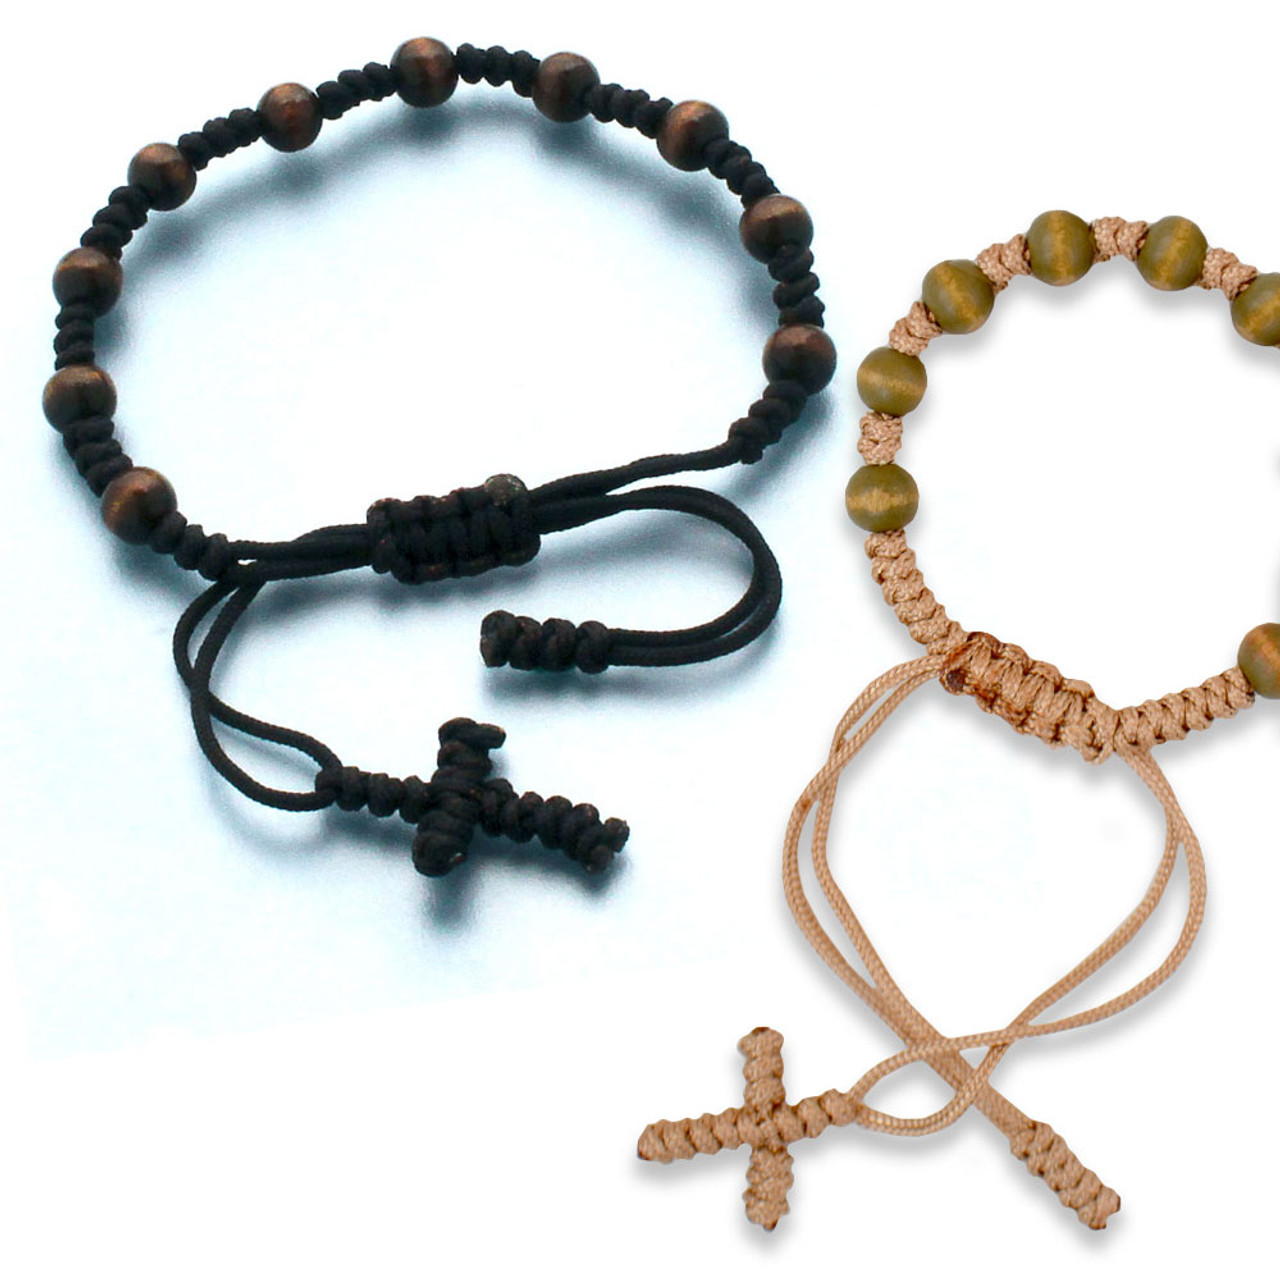 Wood Bead Rosary Bracelet with Knotted Cord